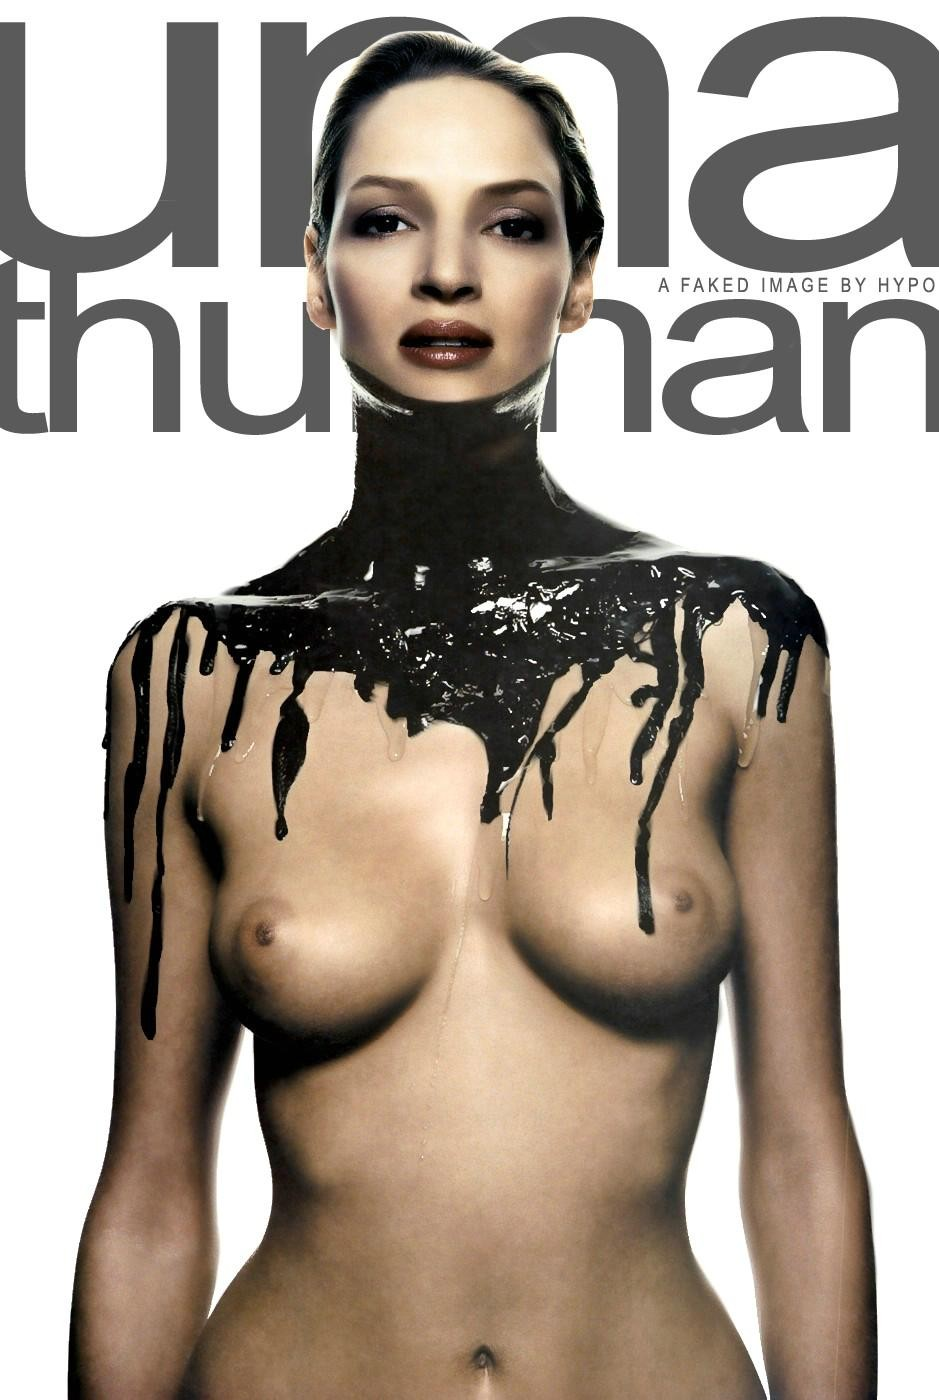 Uma Thurman naked and getting hot in these pics - Pichunter